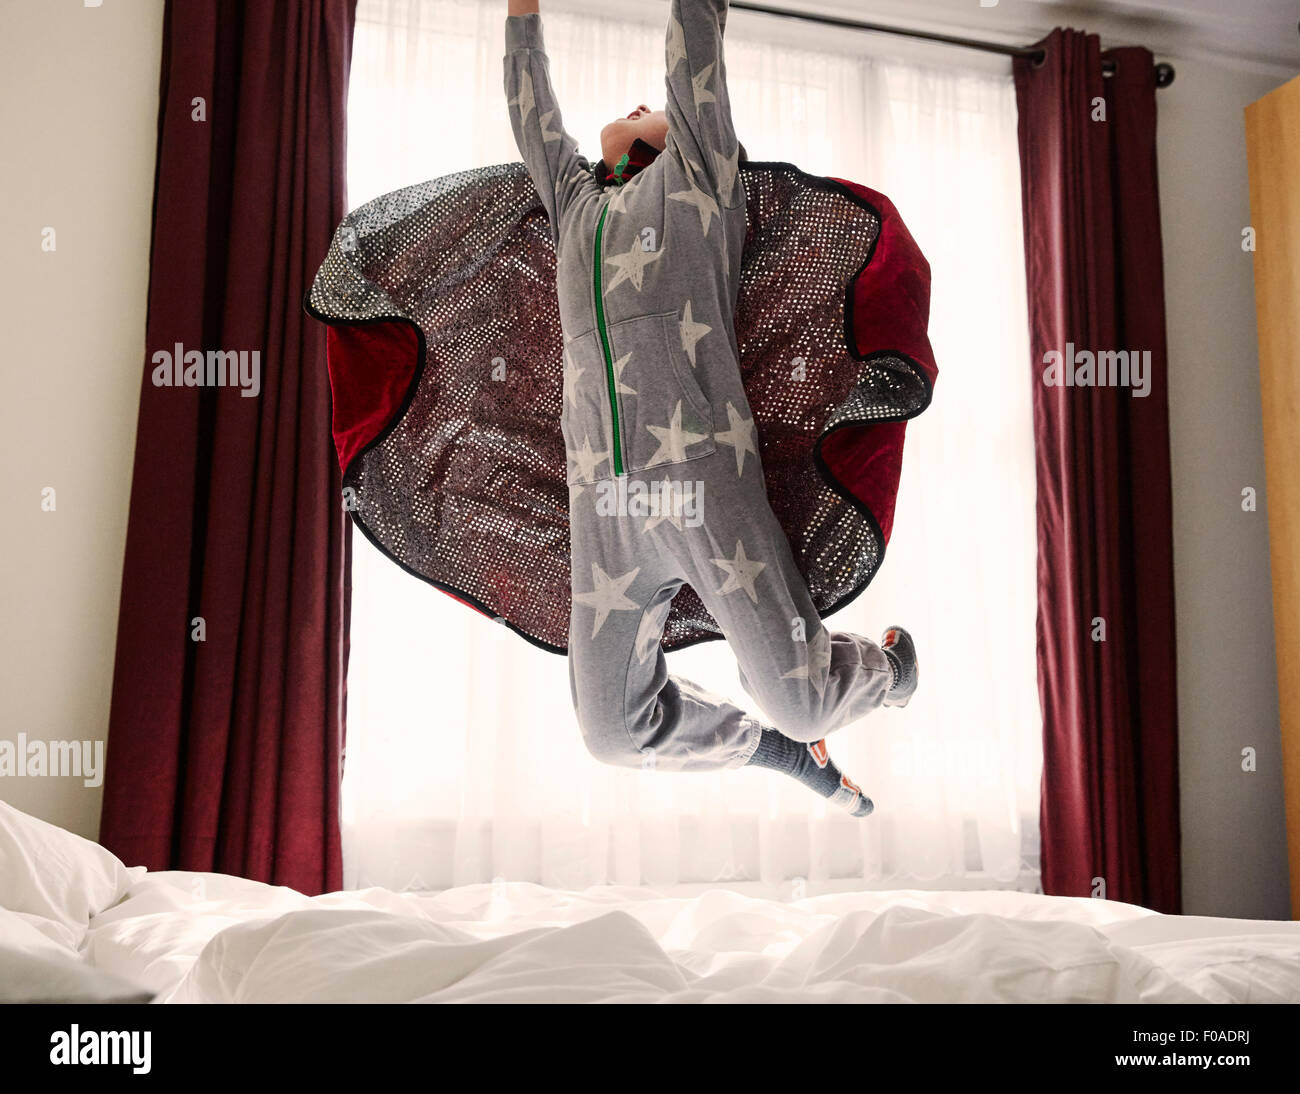 Young boy wearing cape jumping on bed - Stock Image